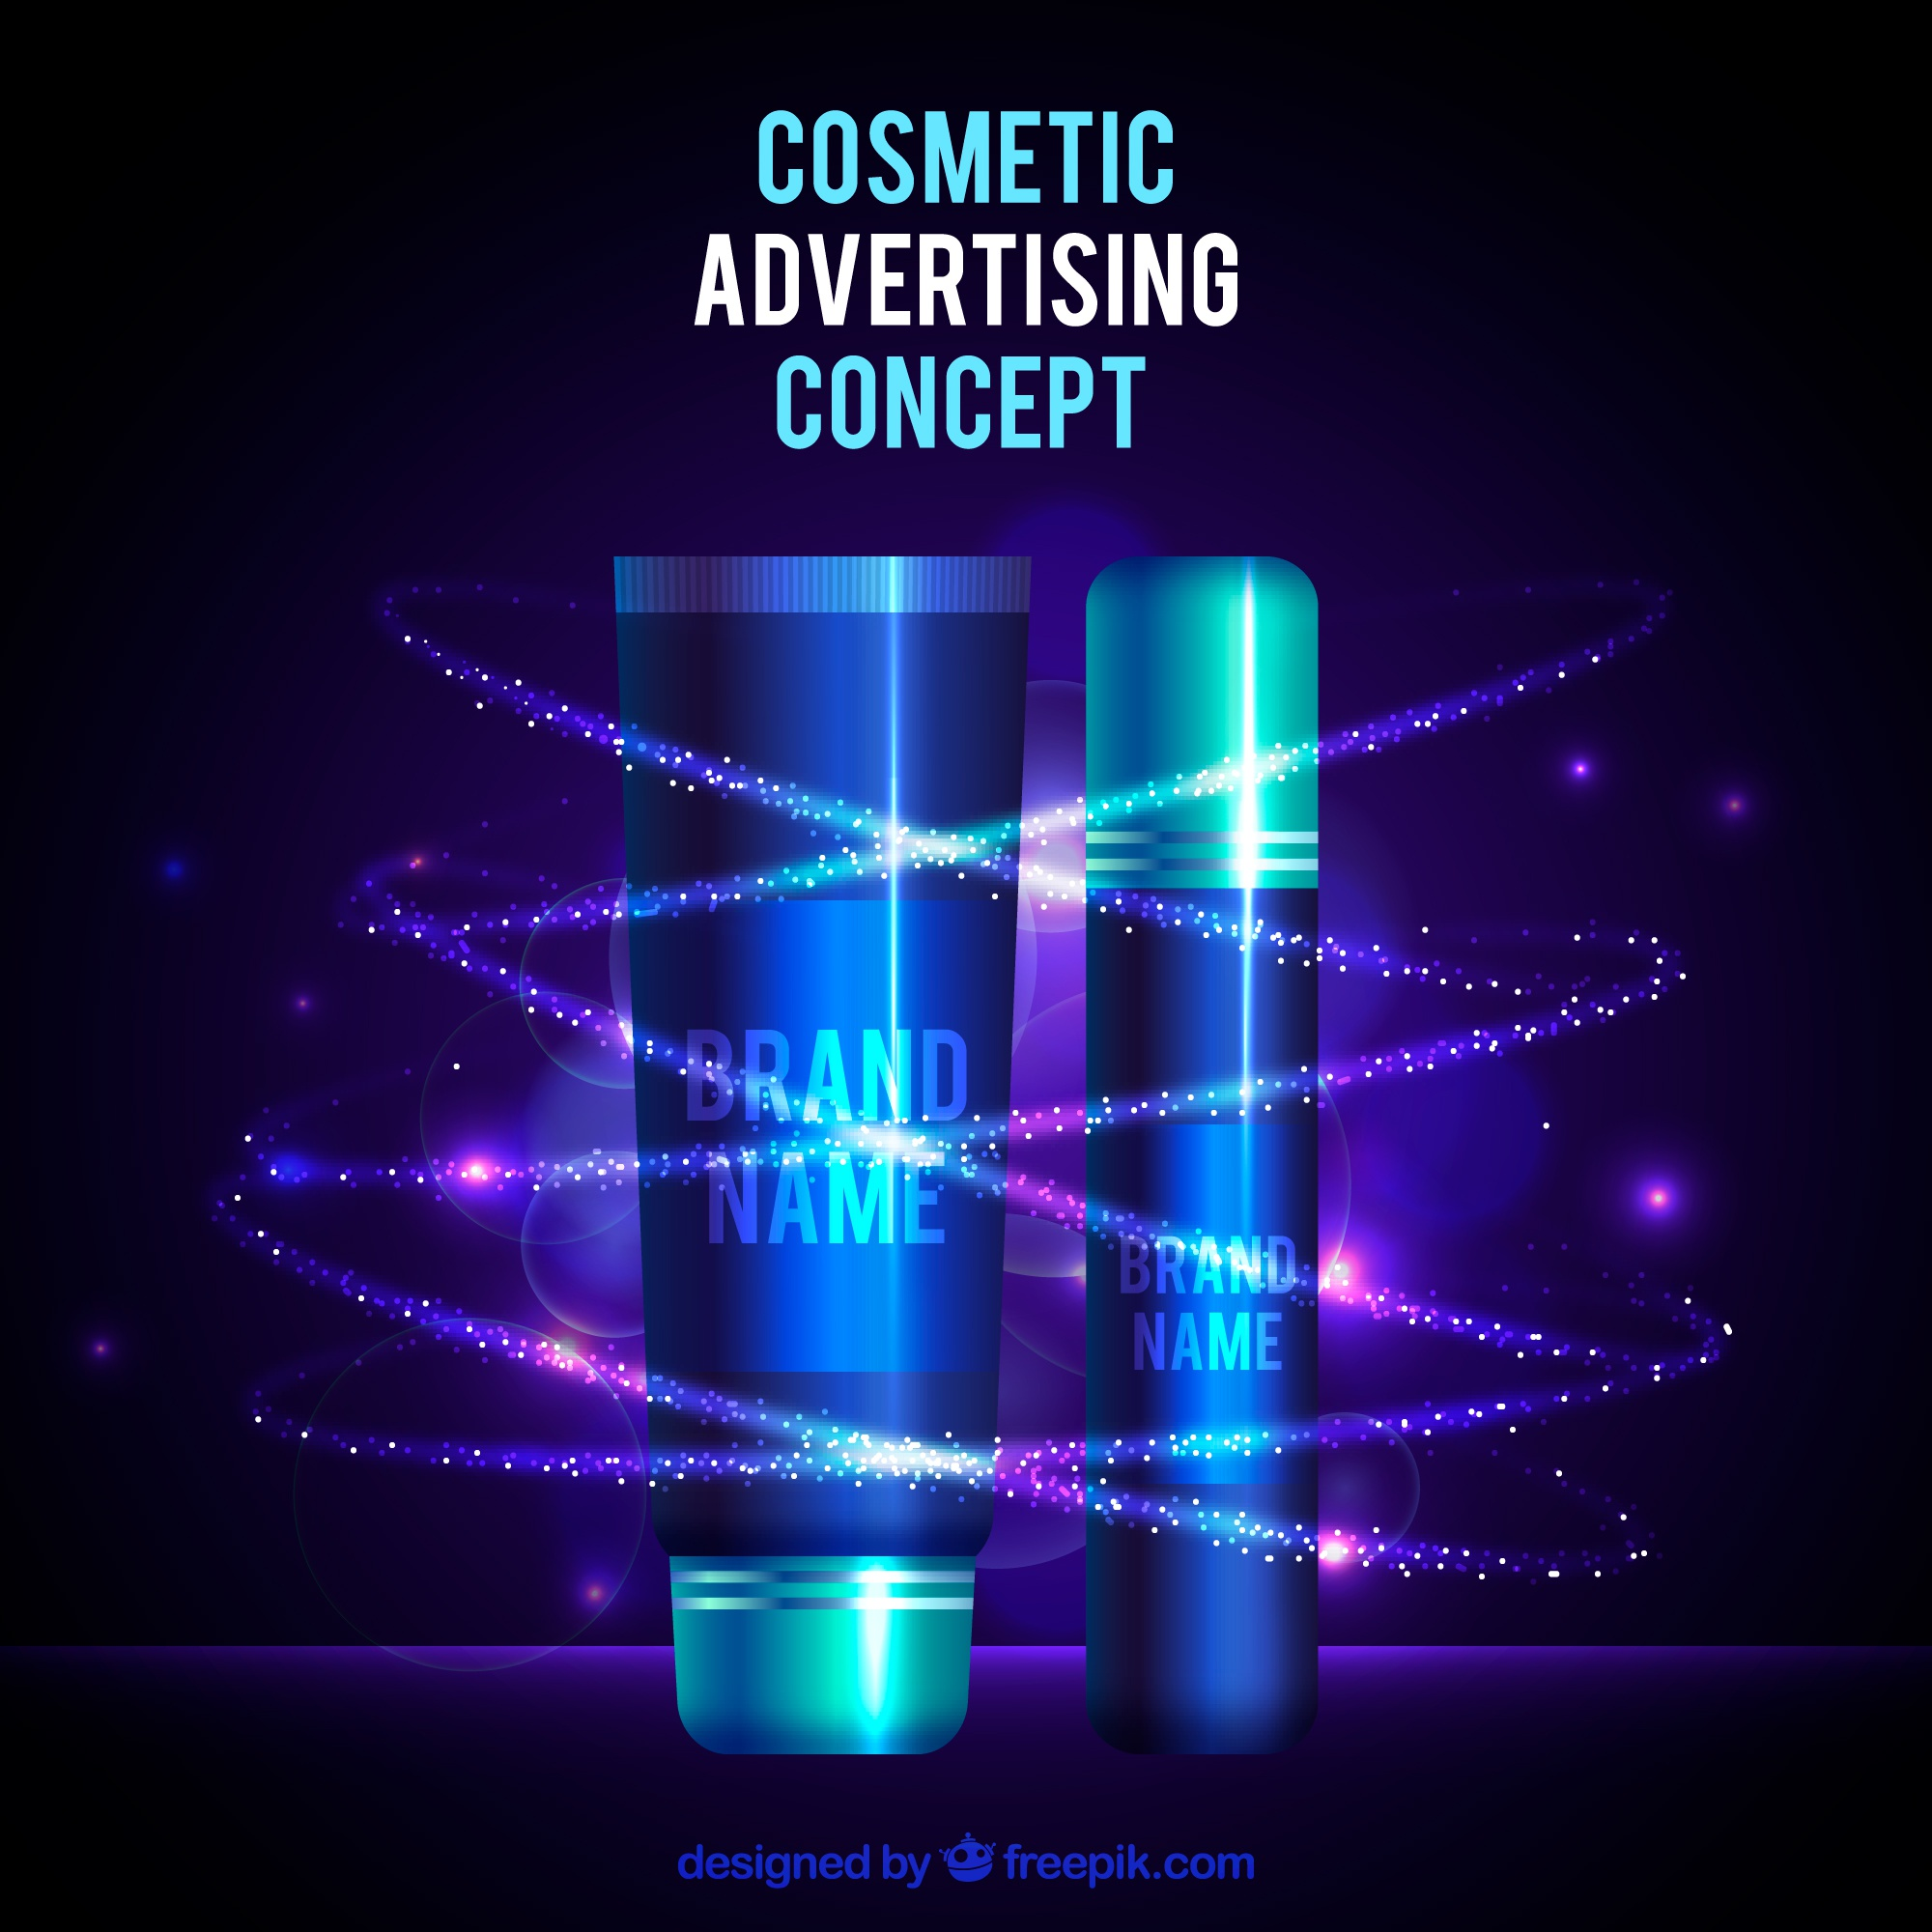 Cosmetic advertising concept